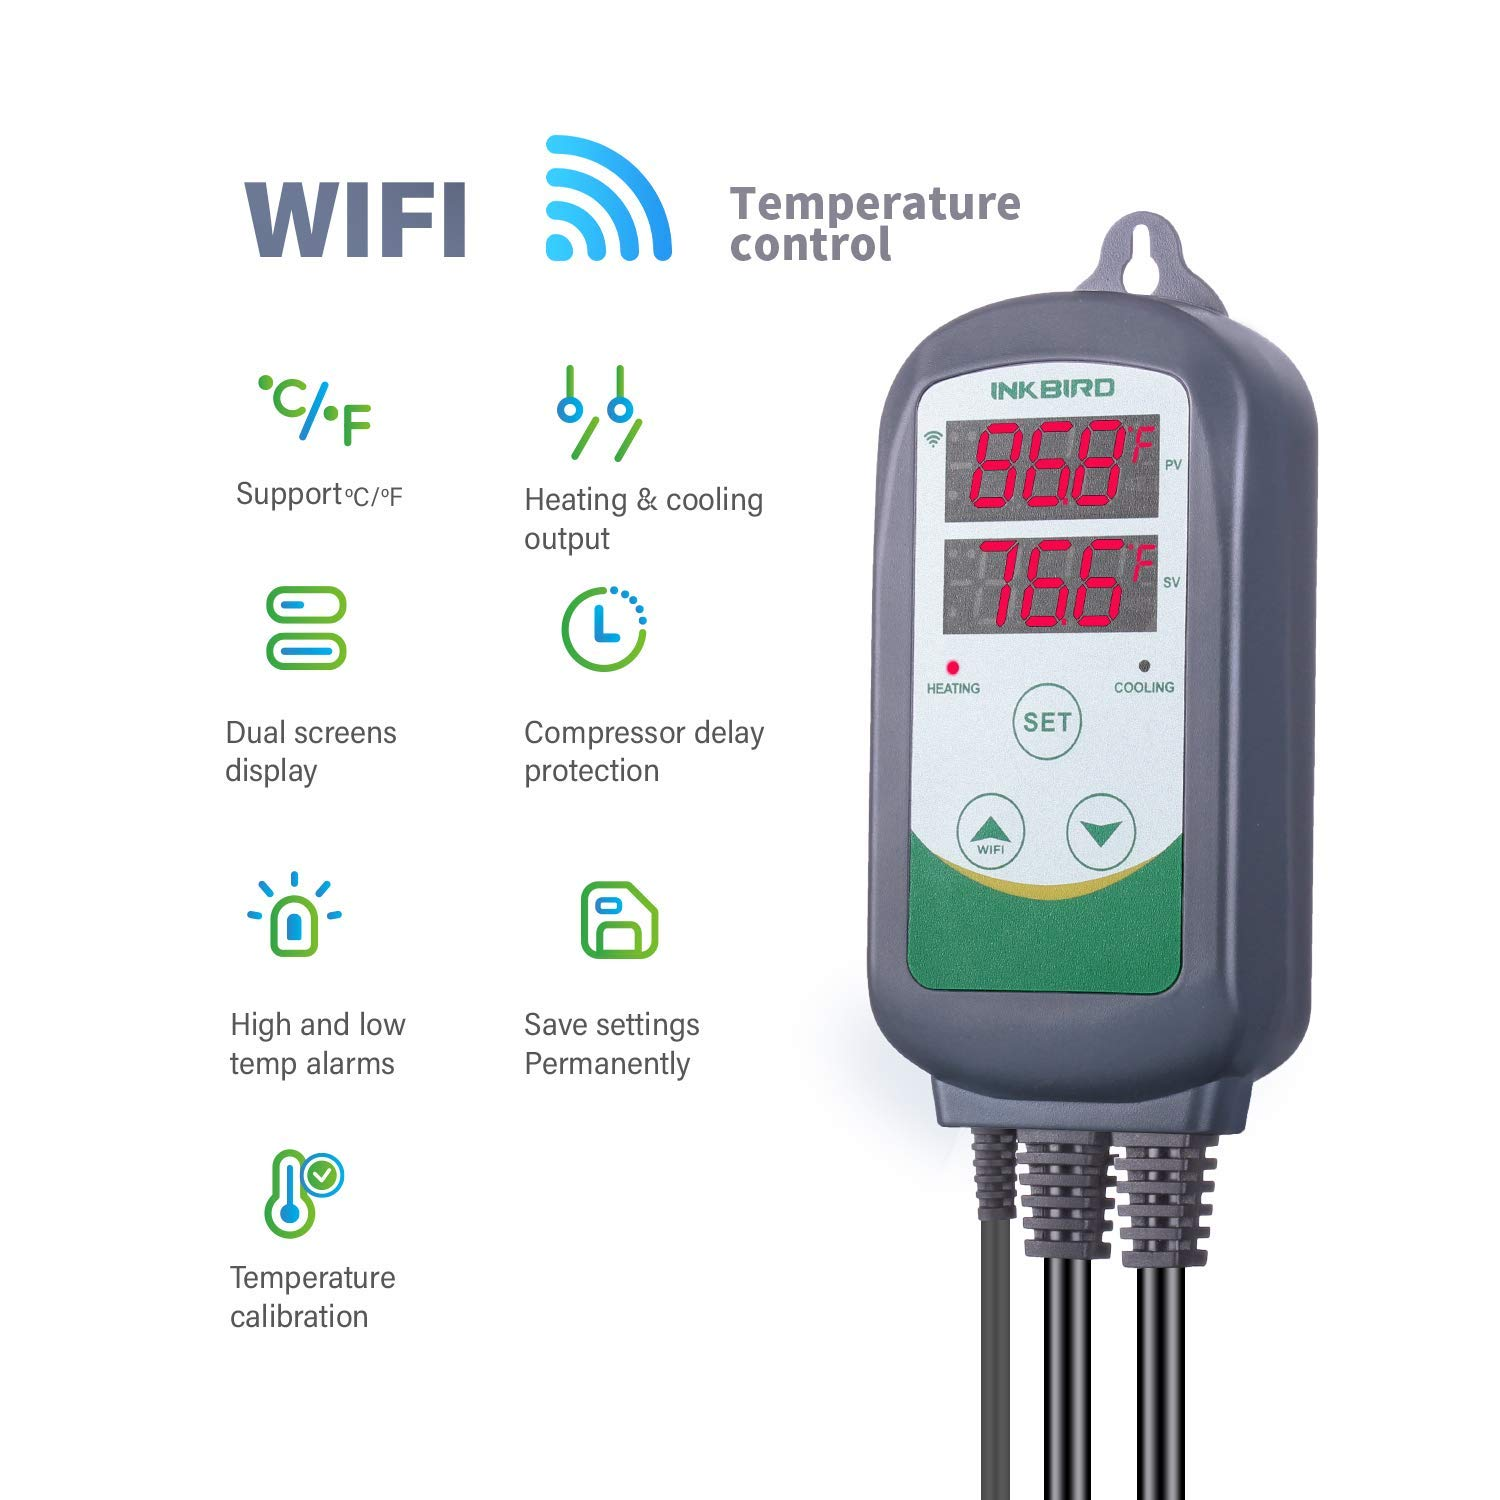 Inkbird WiFi Temperature Controller ITC308 Reptile Freezer Thermostat Digital Heating and Cooling Heater Cooler Greenhouse Plug Outlet 2 Stage 1100W 110V by Inkbird